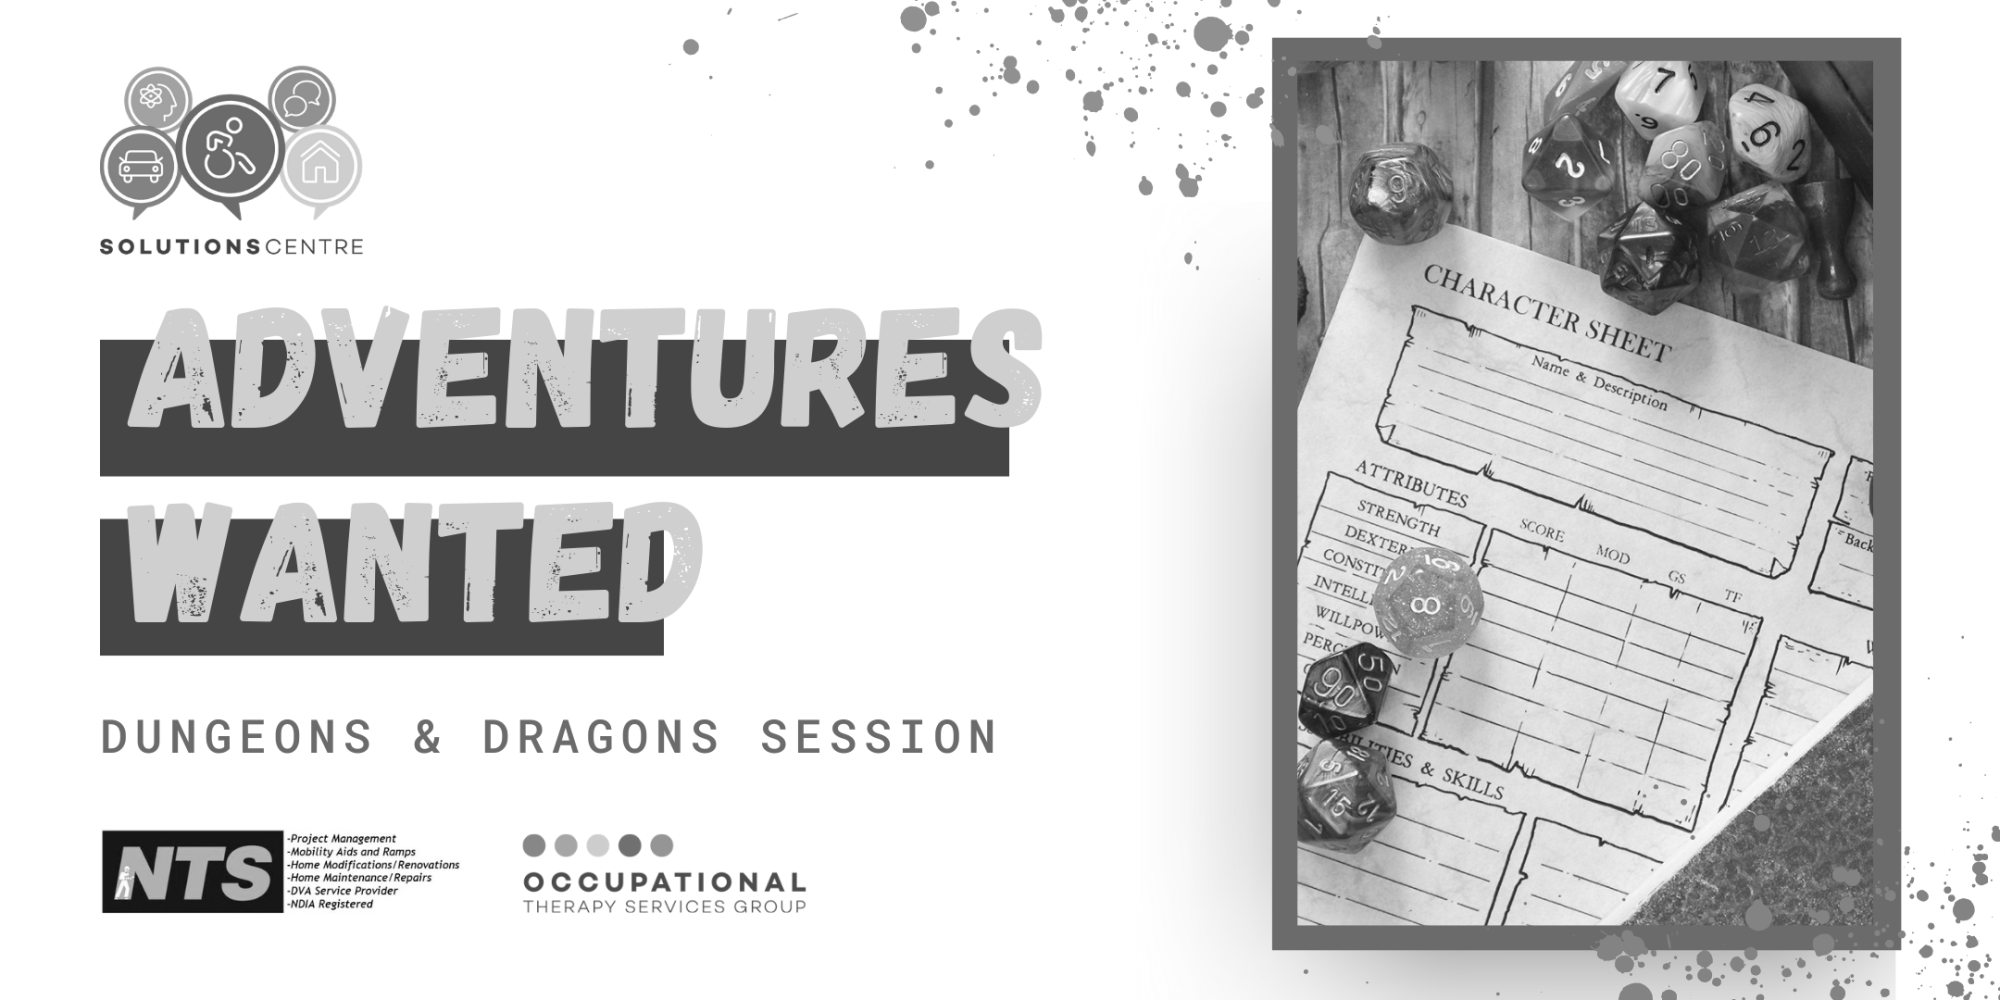 FREE DUNGEONS & DRAGONS SESSIONS